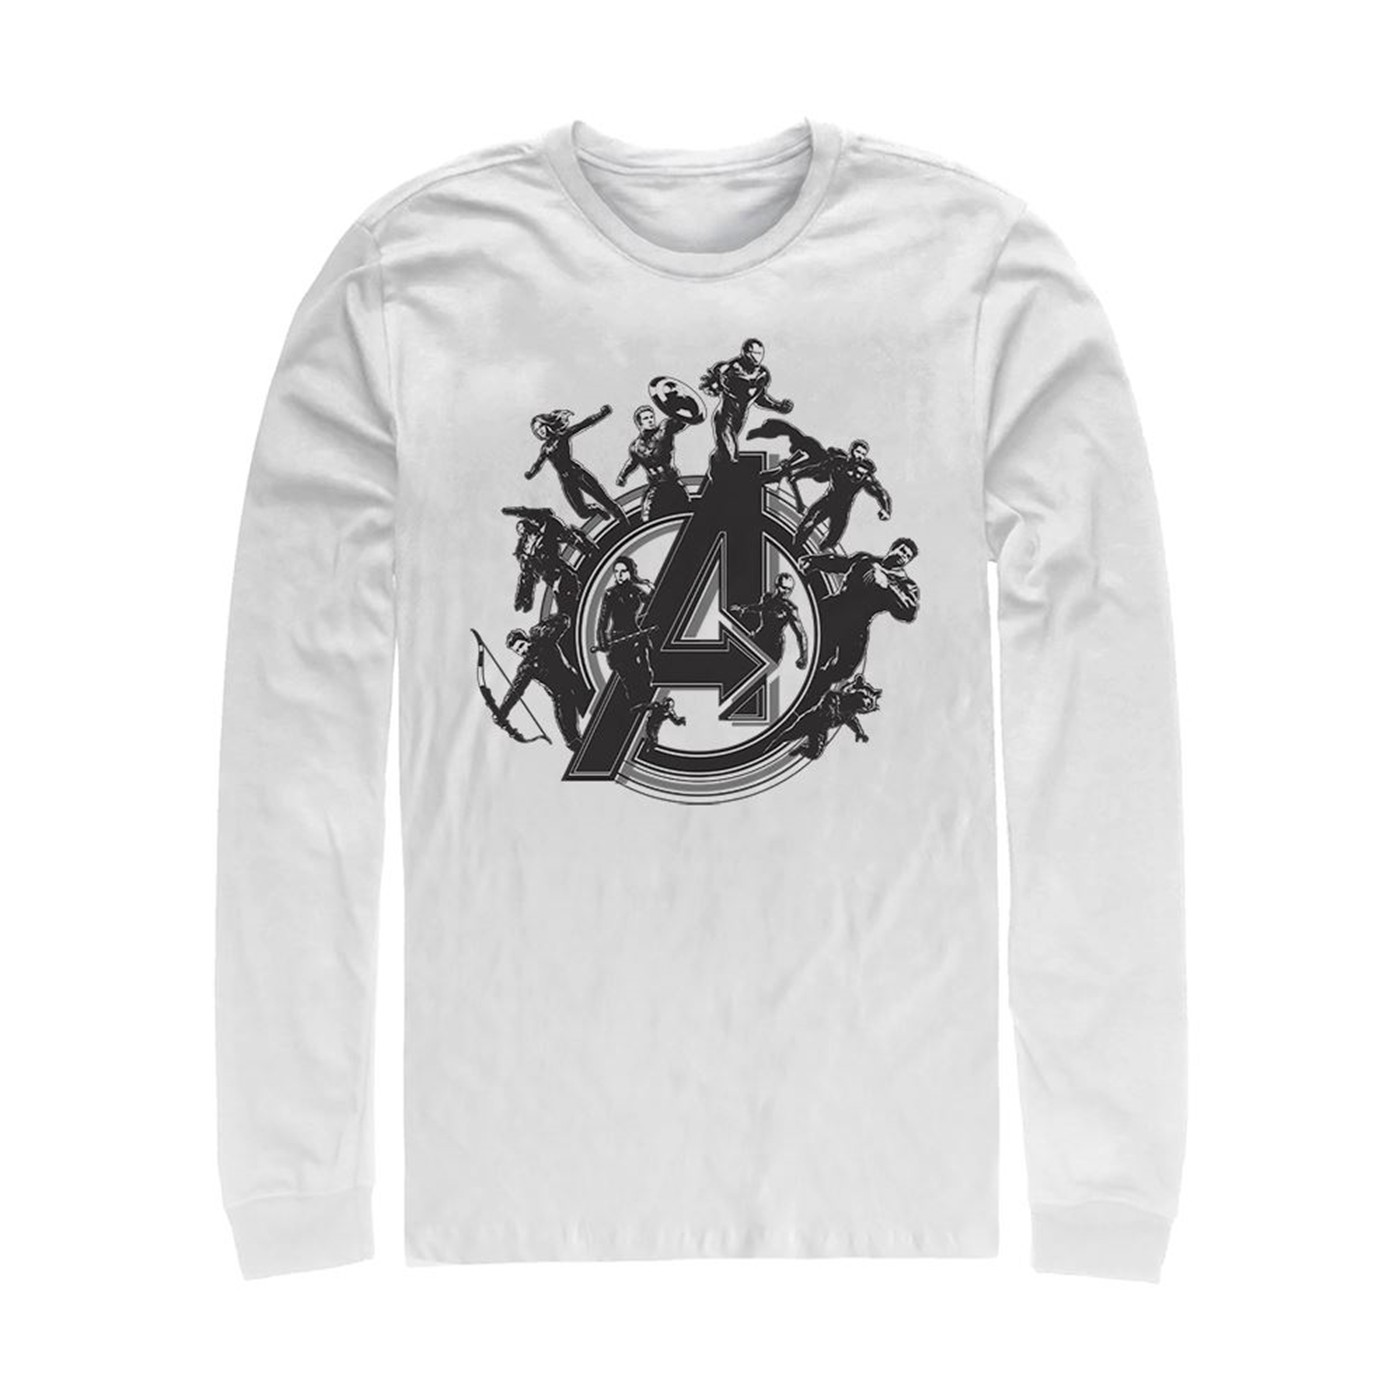 Avengers Endgame Flying Heroes Long Sleeve